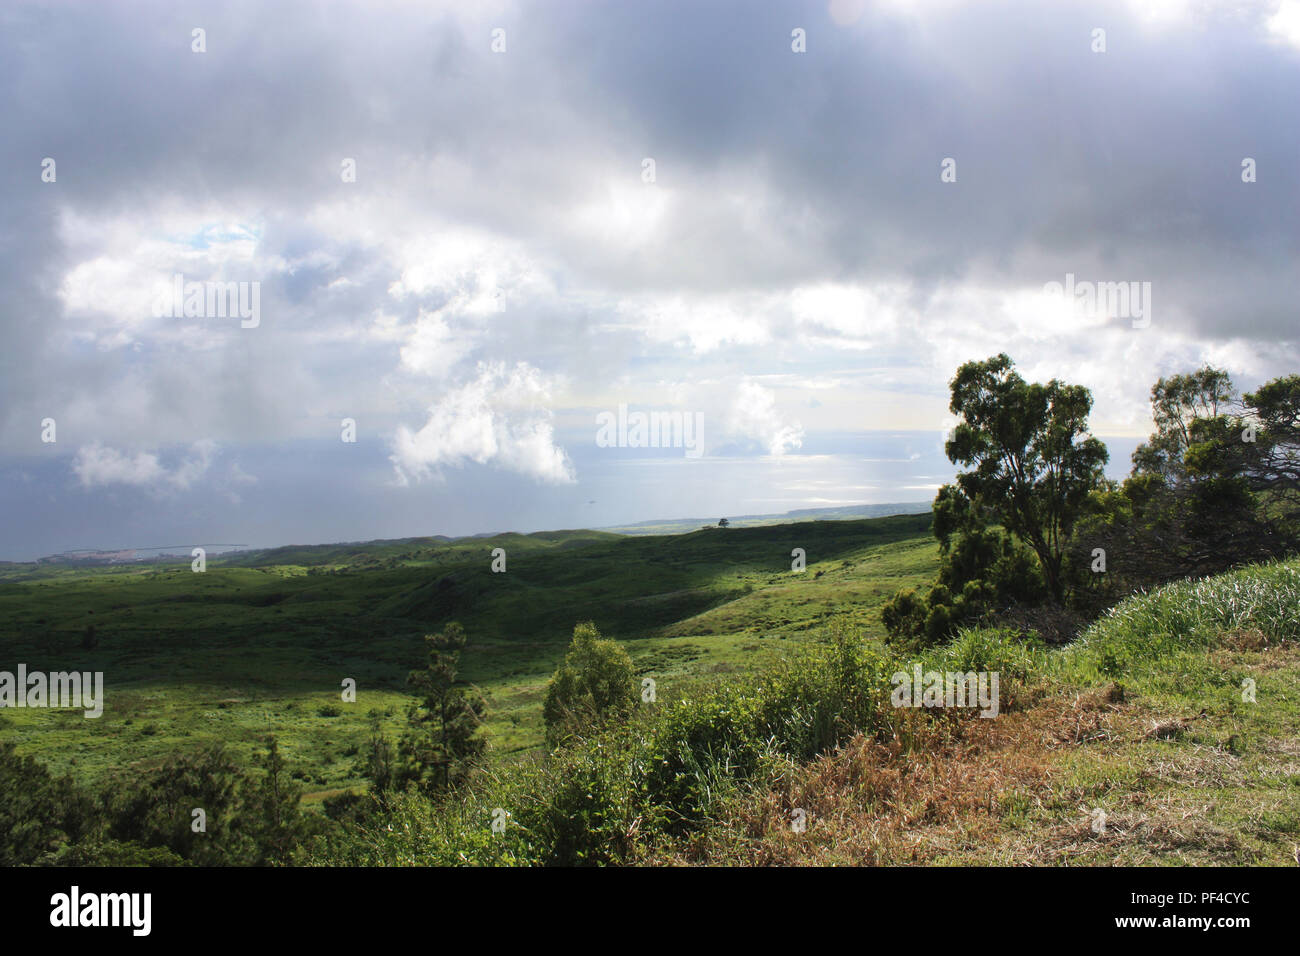 The rolling hills of pastureland in North Kohala, Hawaii, with low lying rainclouds casting shadows over the land and the Pacific Ocean in the backgro - Stock Image